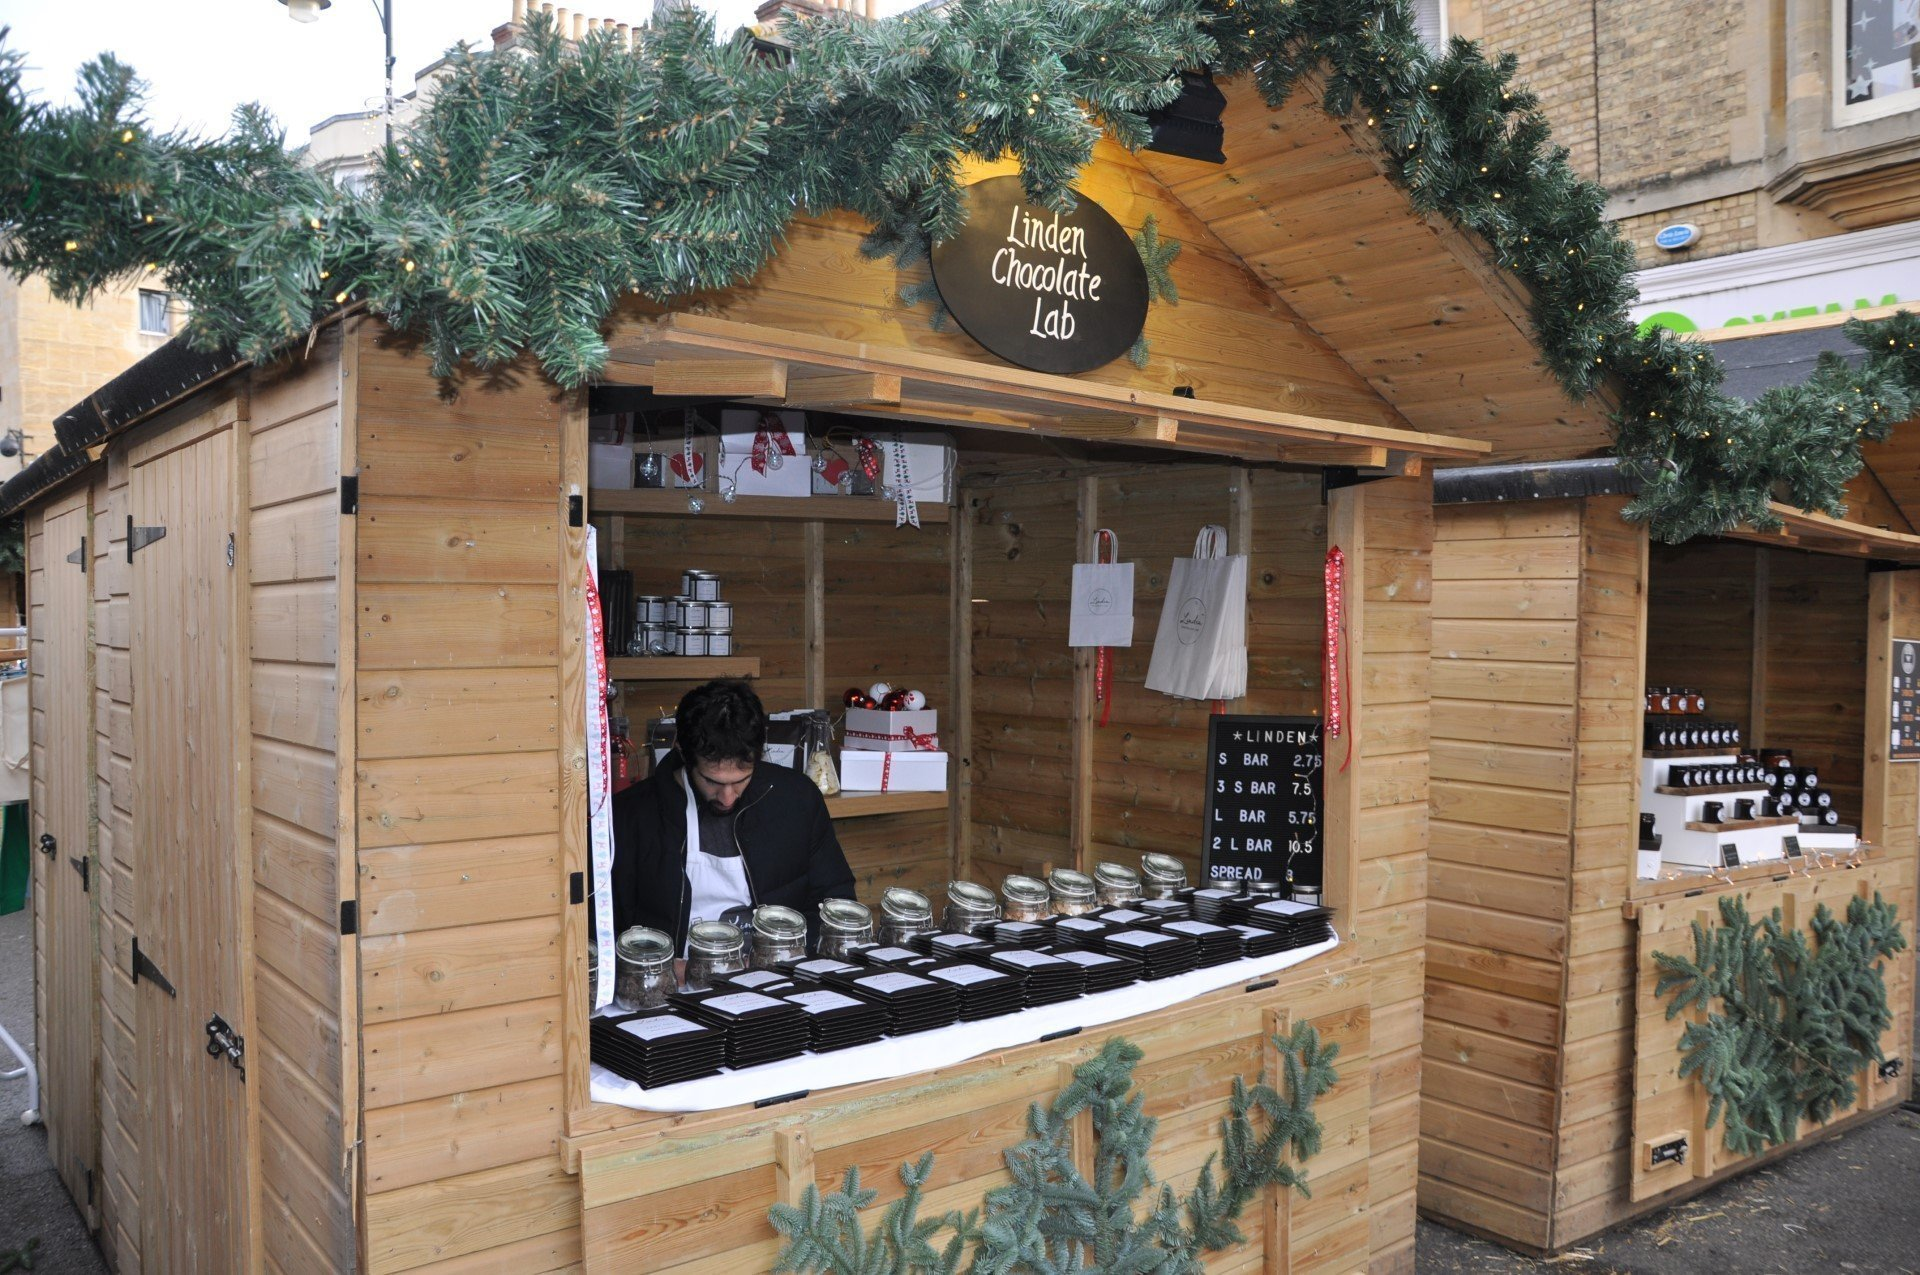 In Pictures: Oxford Christmas Market 2019 - Gallery Image 38